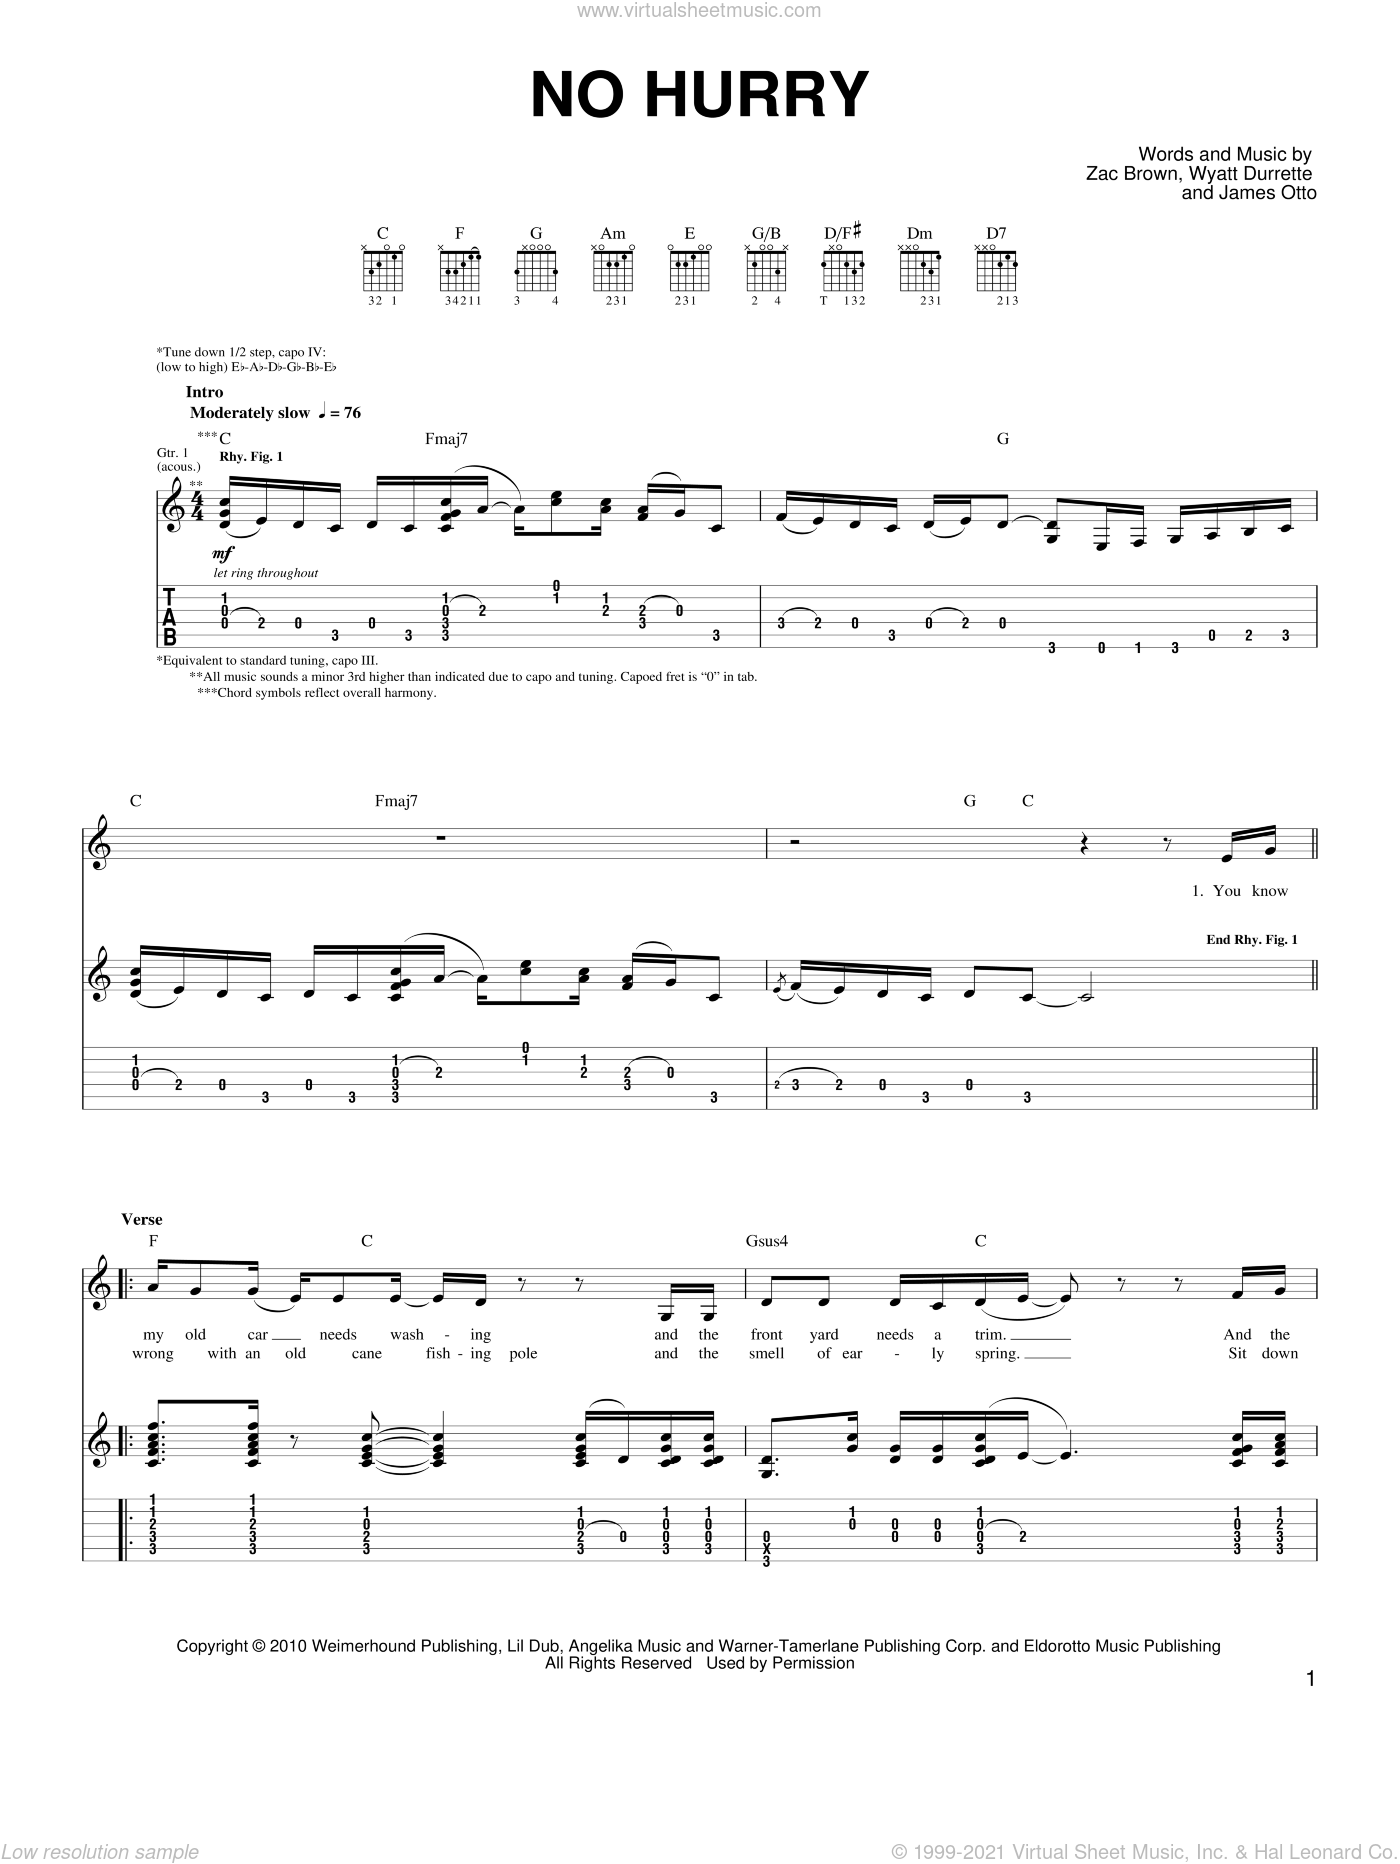 No Hurry sheet music for guitar solo (chords) by Zac Brown Band, James Otto, Wyatt Durrette and Zac Brown, easy guitar (chords)